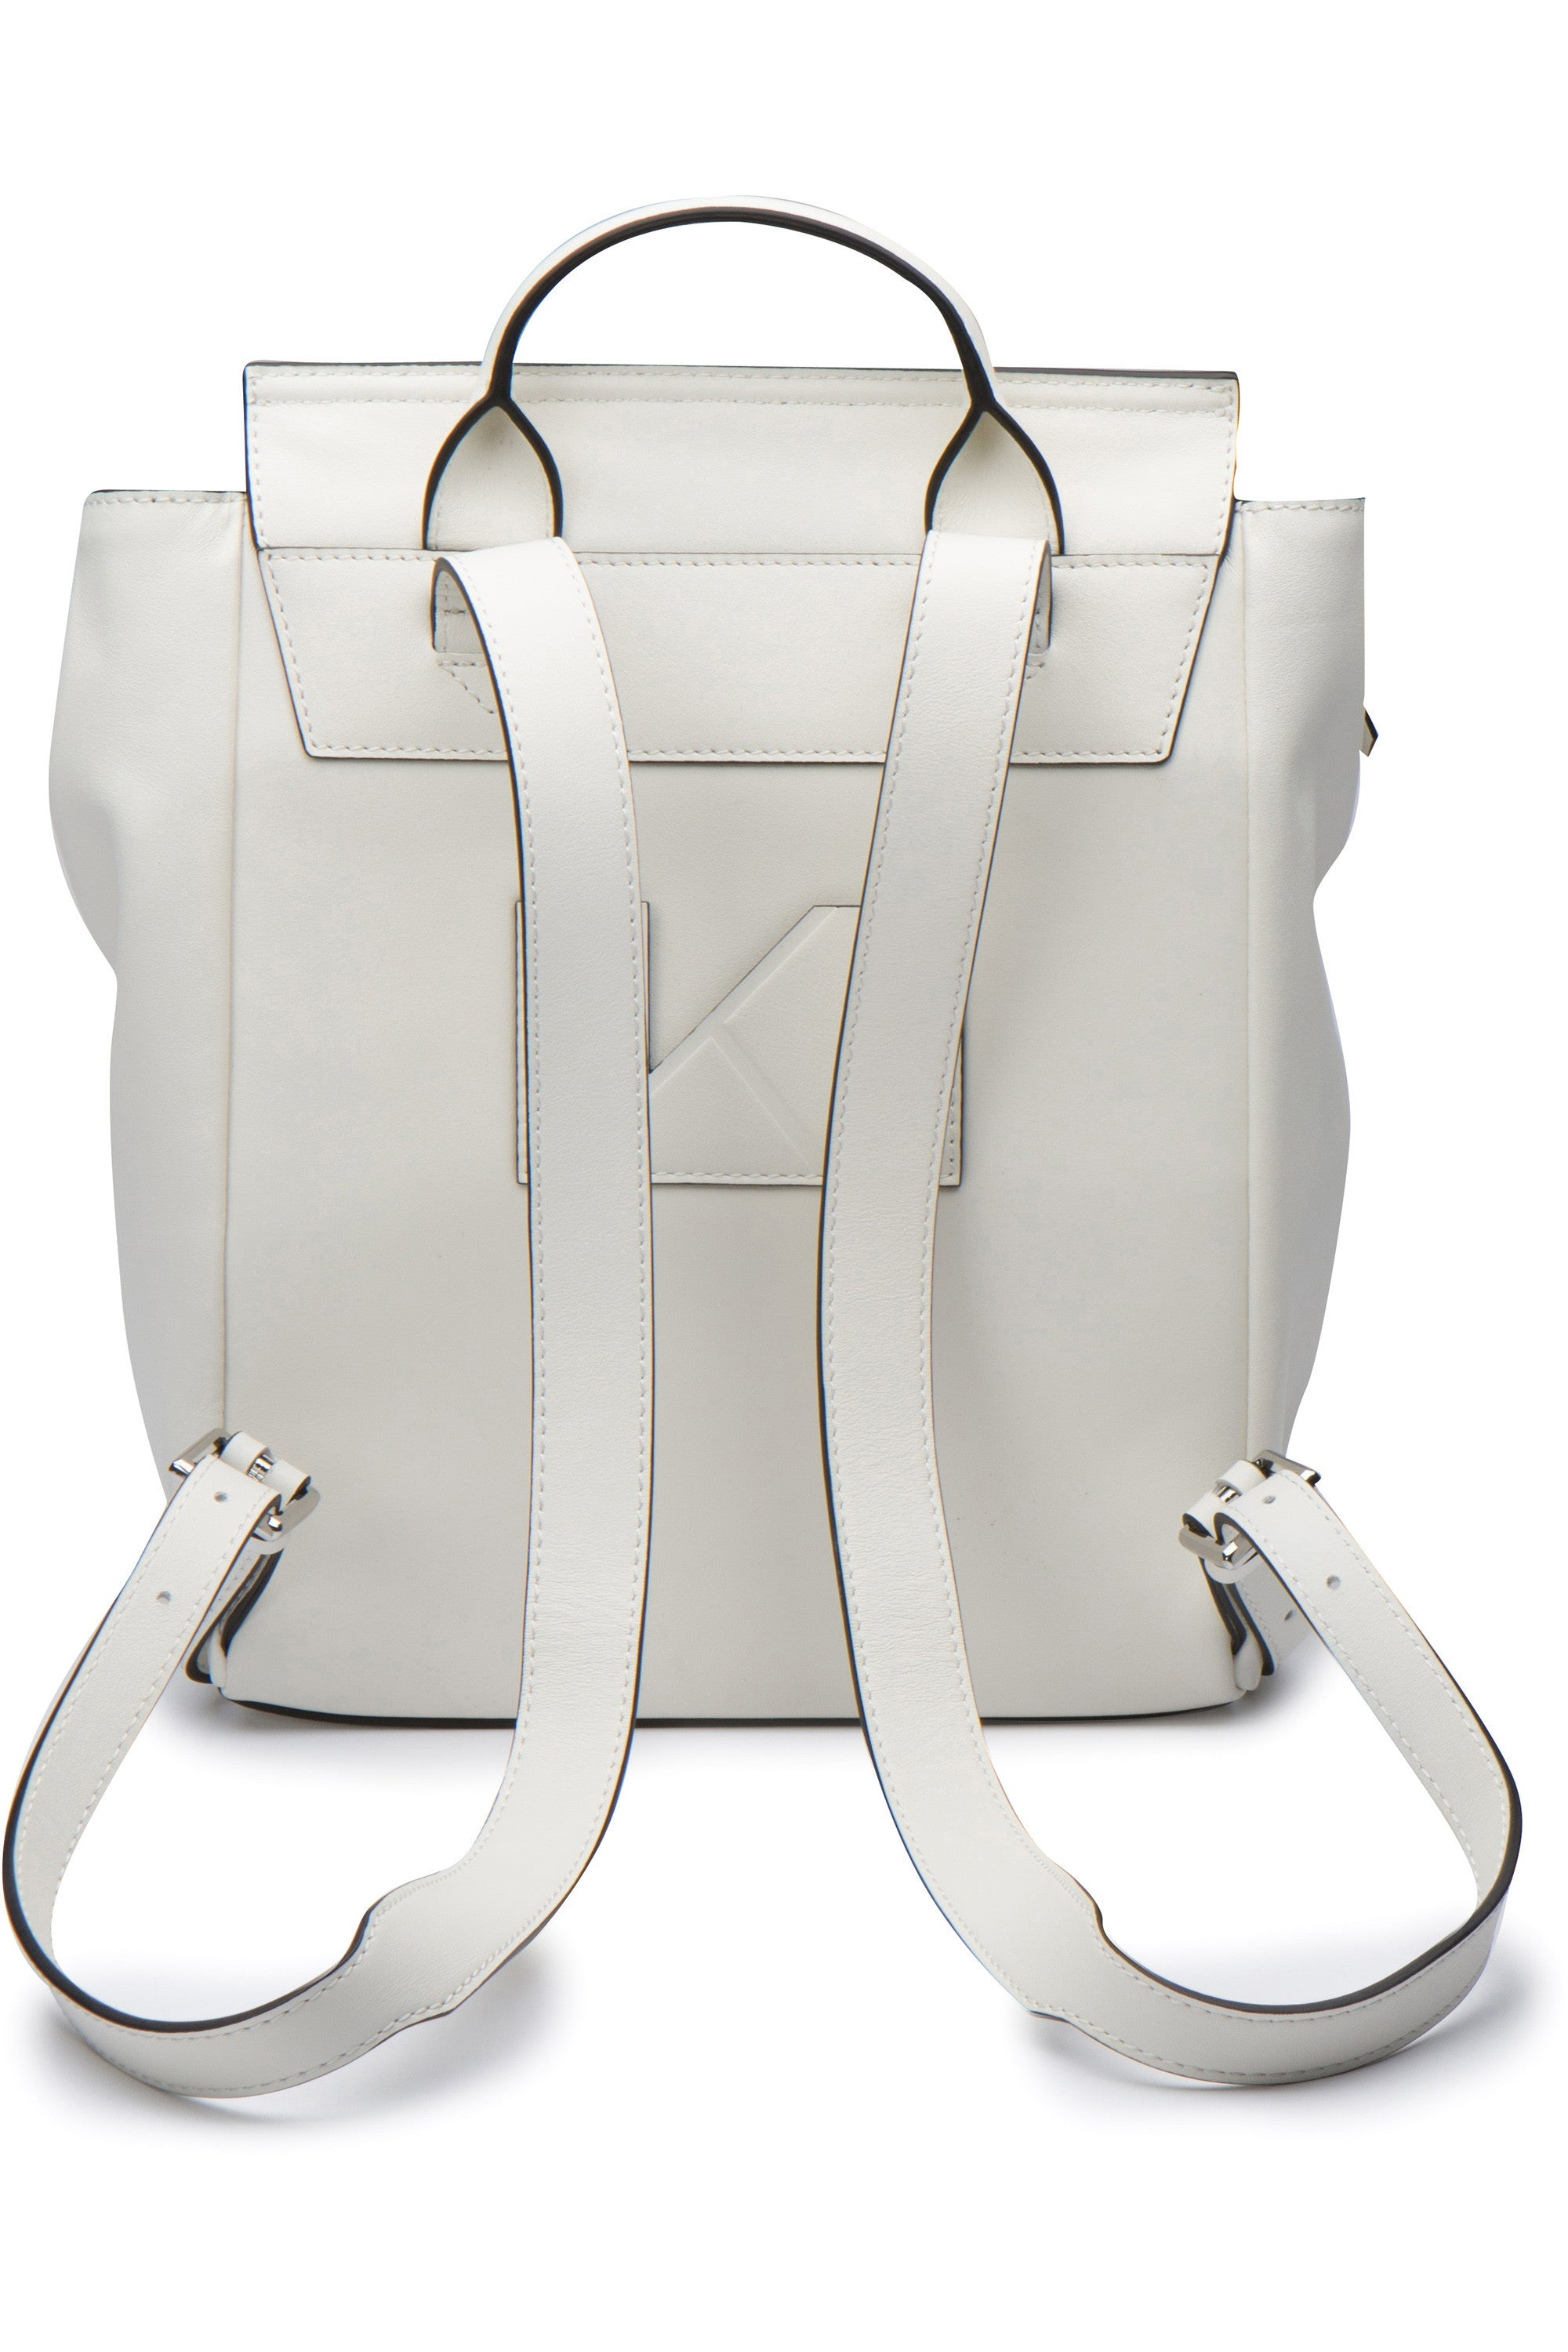 ANNABELLE BACKPACK BAGS by KENDALL + KYLIE